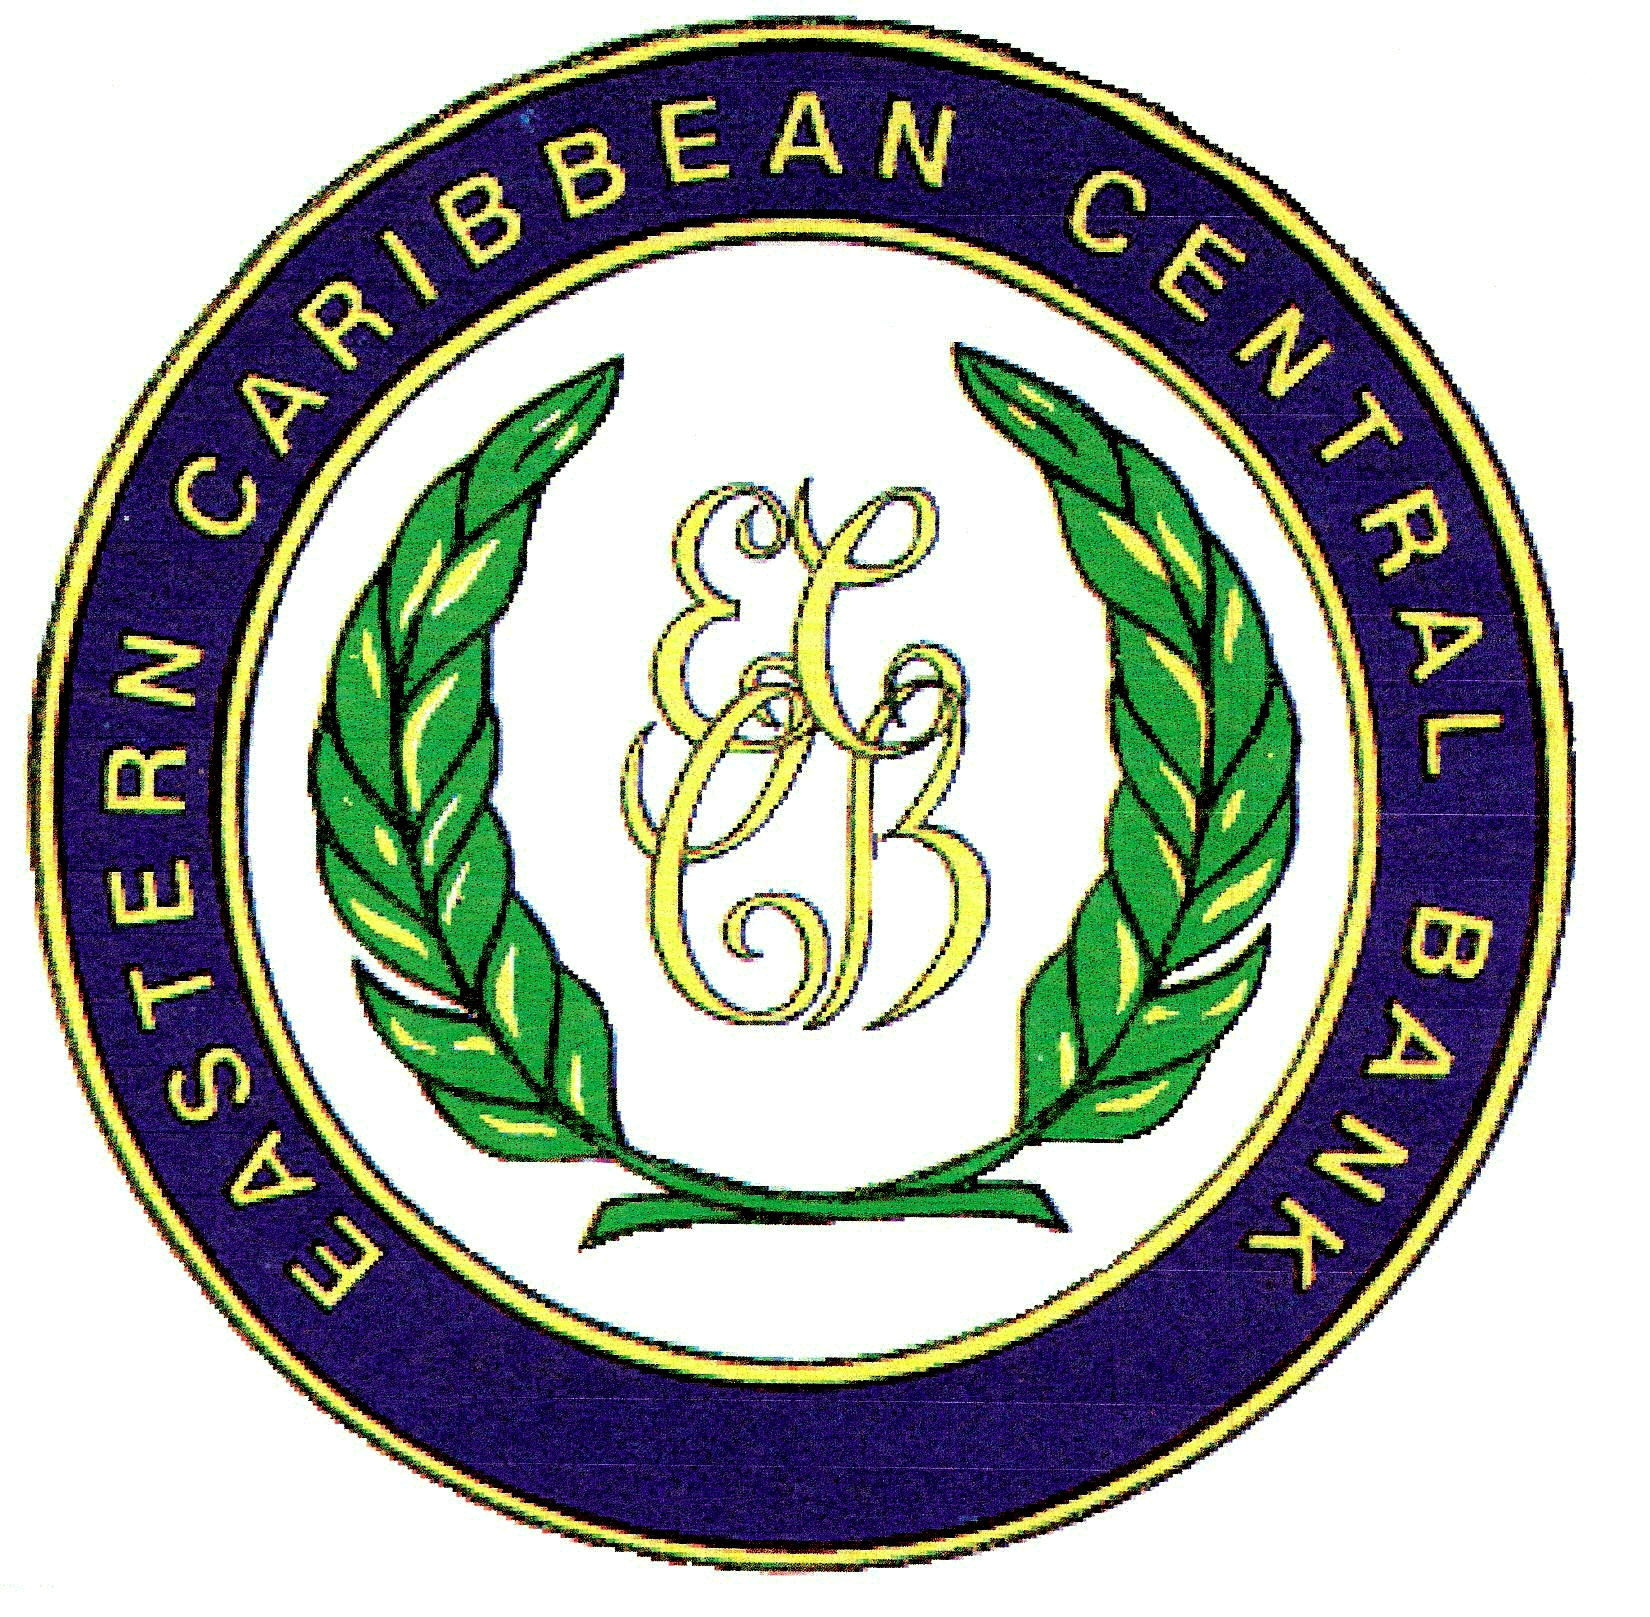 ECCB Adopts New Priorities (St Lucia News)